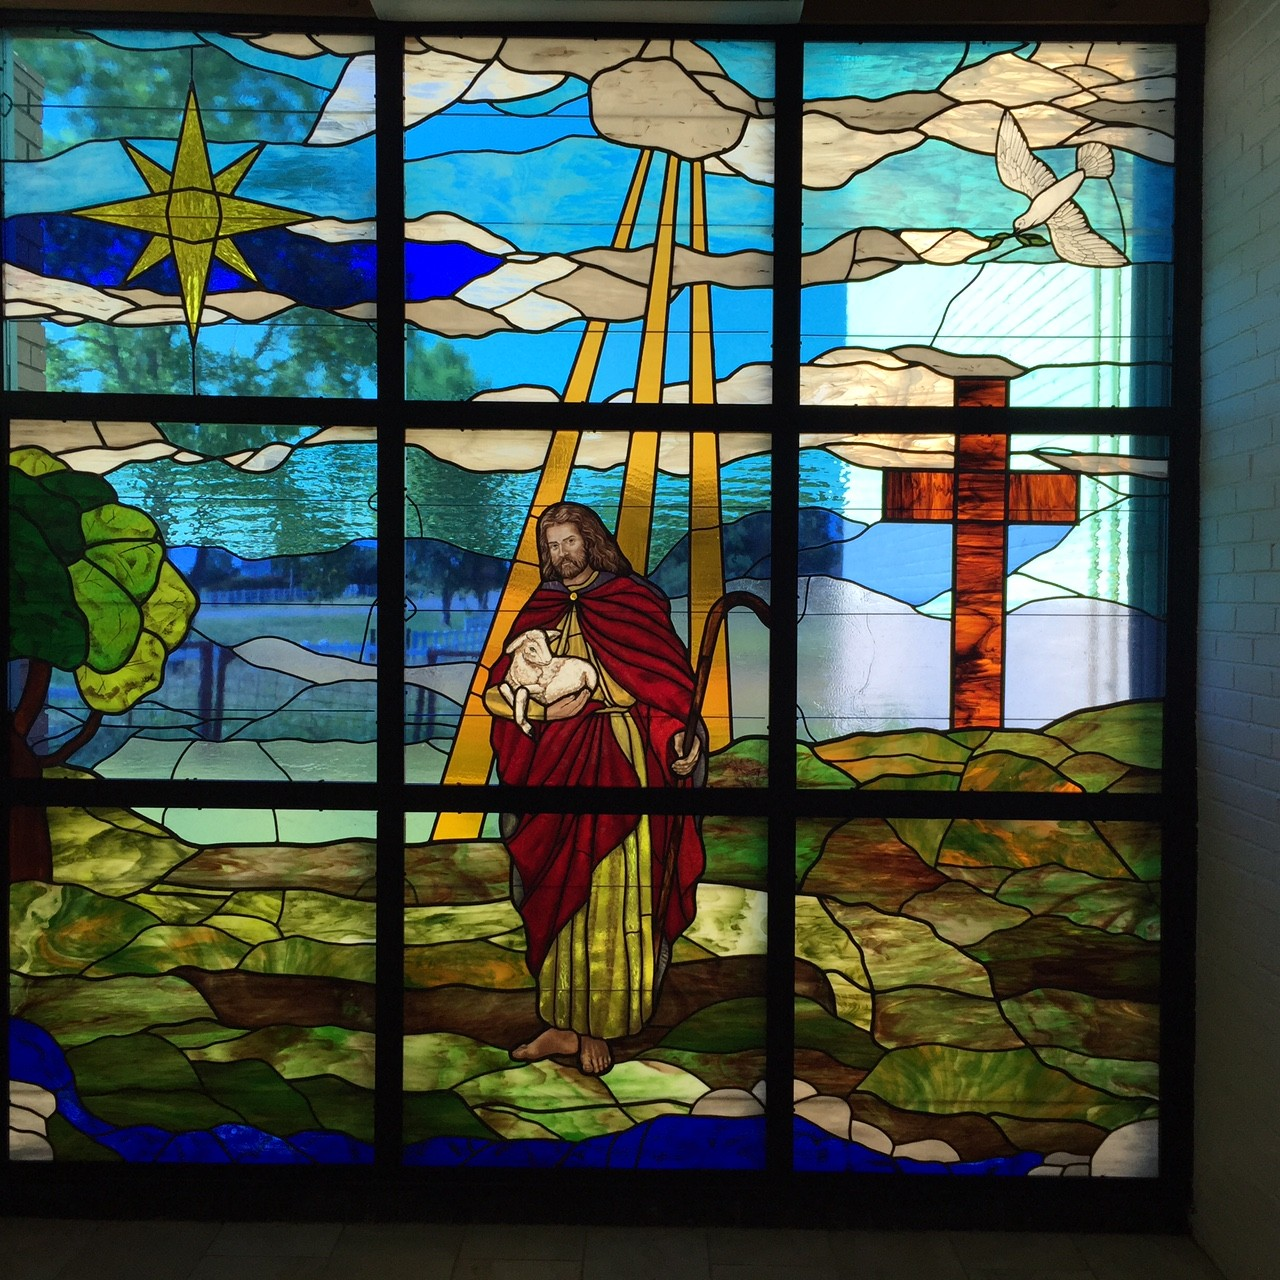 Tulsa Hills Baptist - Jesus holding lamb stained glass